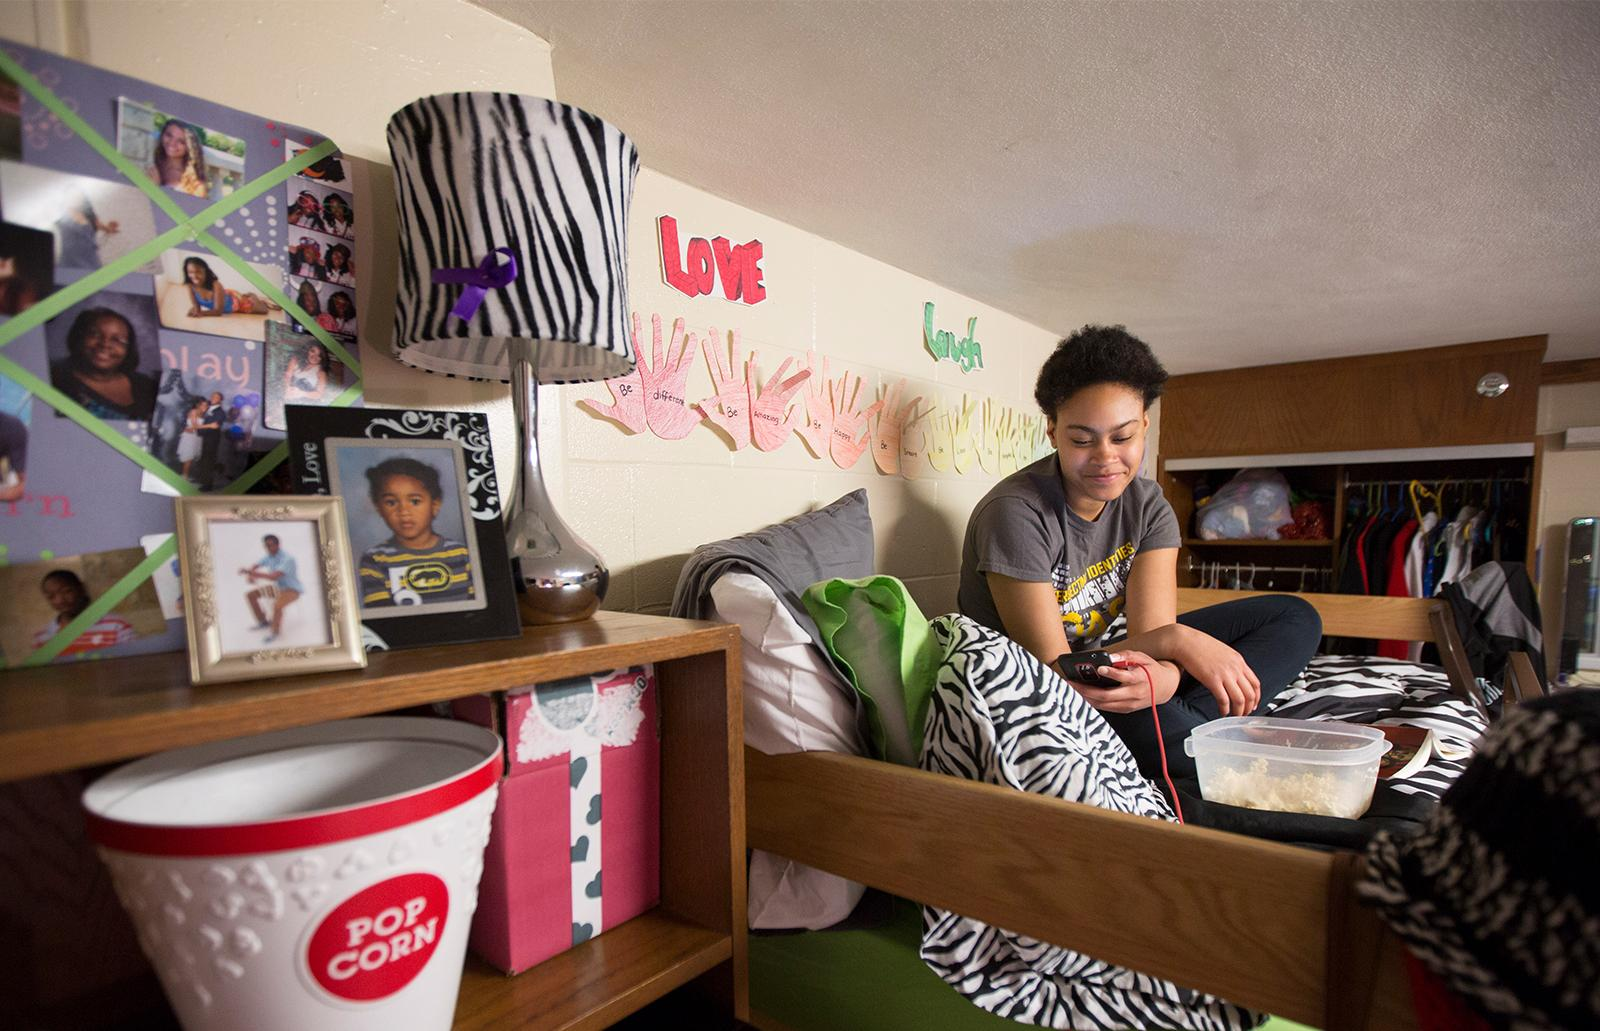 Student sitting on bed in room and texting